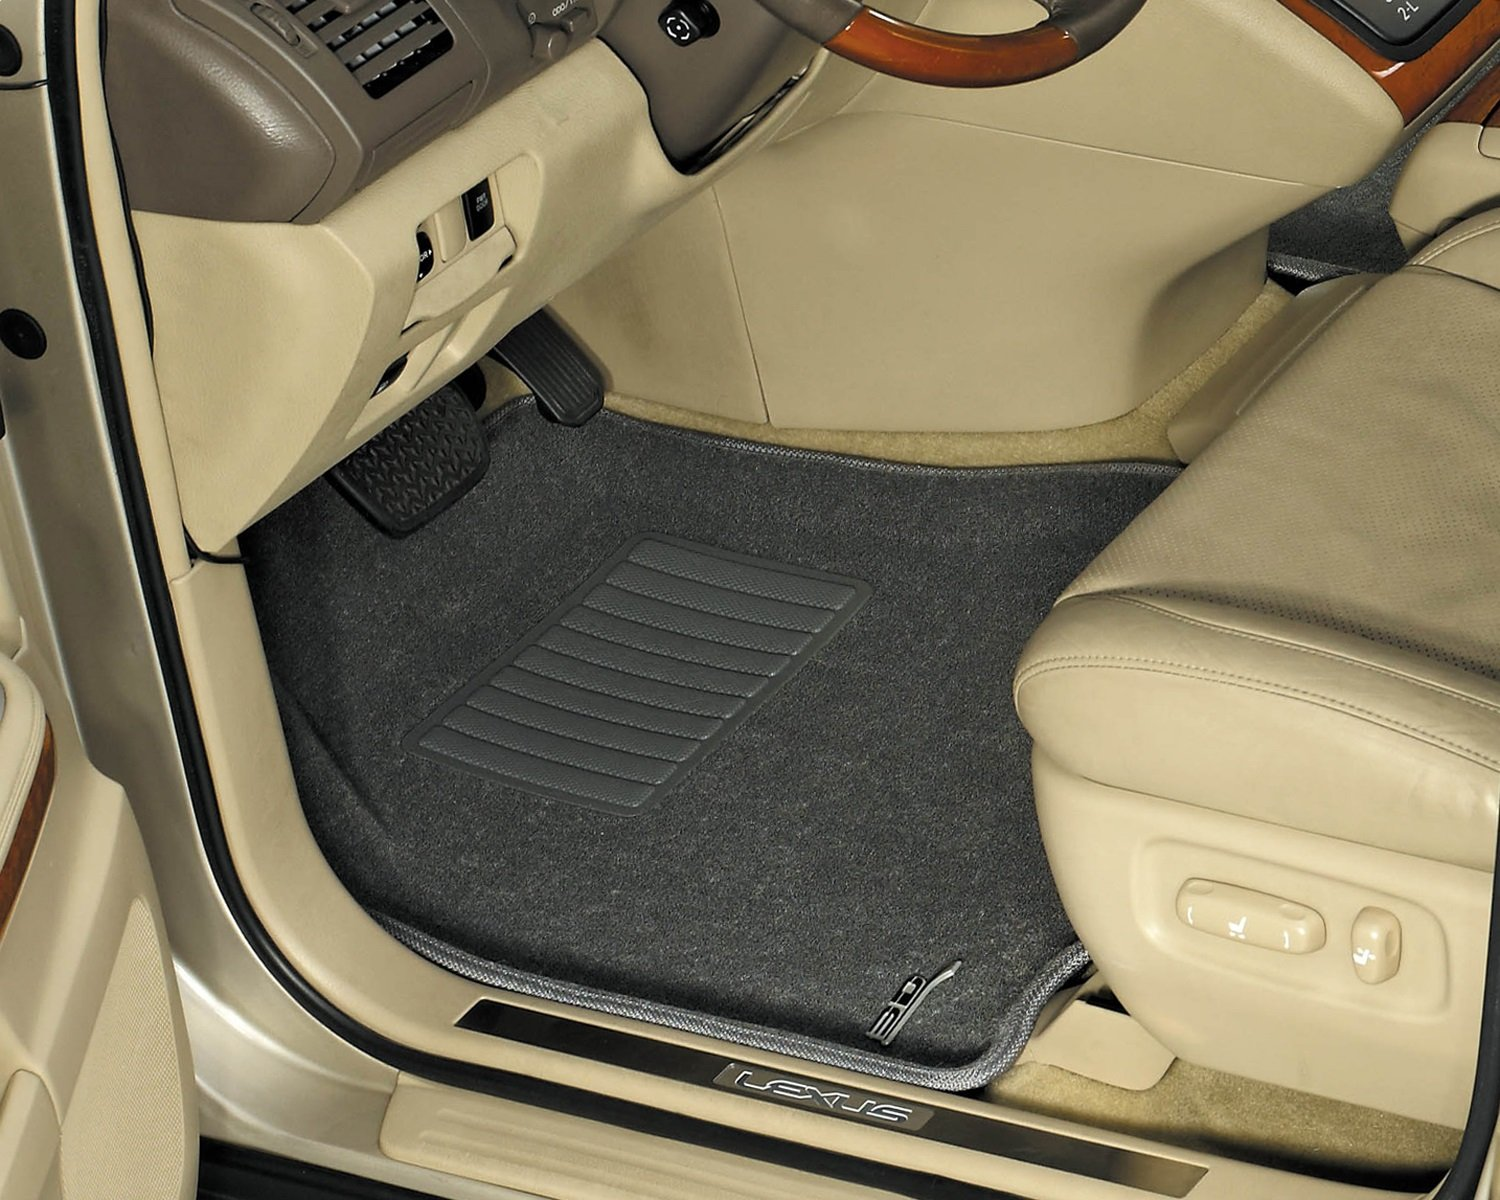 L1FR02902209 Classic Carpet Black 3D MAXpider Complete Set Custom Fit Floor Mat for Select Ford Focus Models